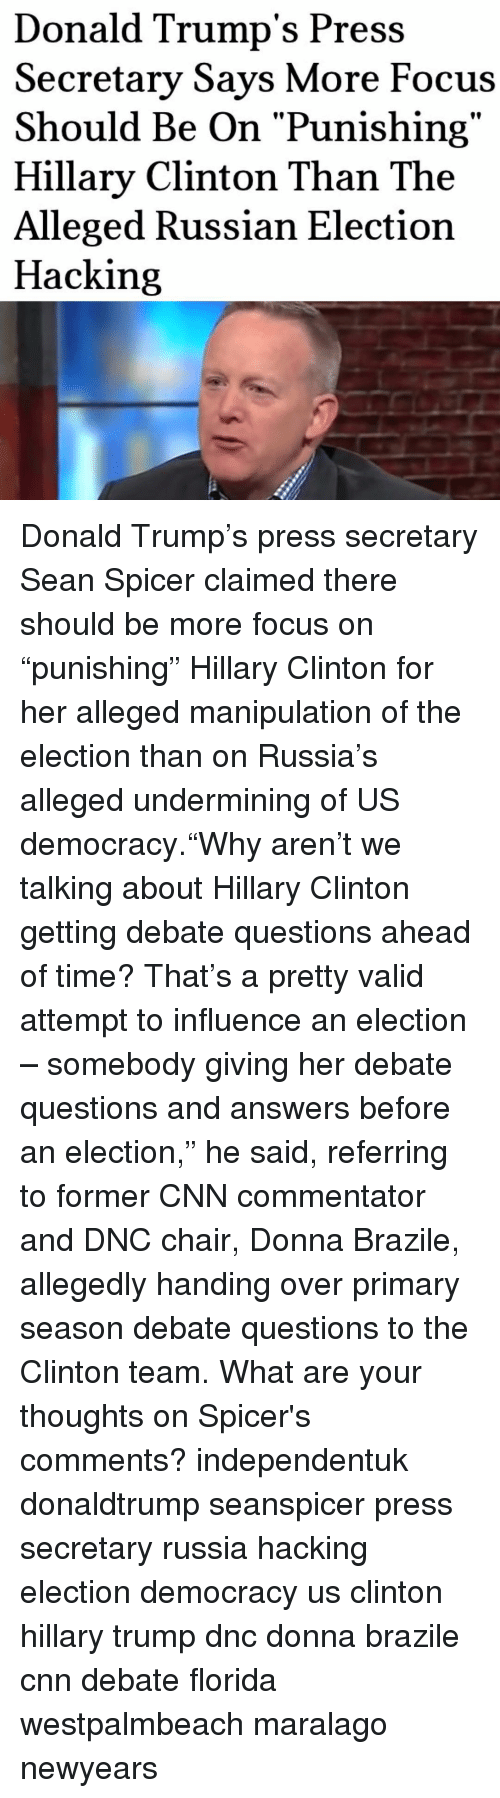 "Donald Trump, Hillary Clinton, and Memes: Donald Trump's Press  Secretary Says More Focus  Should Be On ""Punishing  Hillary Clinton Than The  Alleged Russian Election  Hacking Donald Trump's press secretary Sean Spicer claimed there should be more focus on ""punishing"" Hillary Clinton for her alleged manipulation of the election than on Russia's alleged undermining of US democracy.""Why aren't we talking about Hillary Clinton getting debate questions ahead of time? That's a pretty valid attempt to influence an election – somebody giving her debate questions and answers before an election,"" he said, referring to former CNN commentator and DNC chair, Donna Brazile, allegedly handing over primary season debate questions to the Clinton team. What are your thoughts on Spicer's comments? independentuk donaldtrump seanspicer press secretary russia hacking election democracy us clinton hillary trump dnc donna brazile cnn debate florida westpalmbeach maralago newyears"